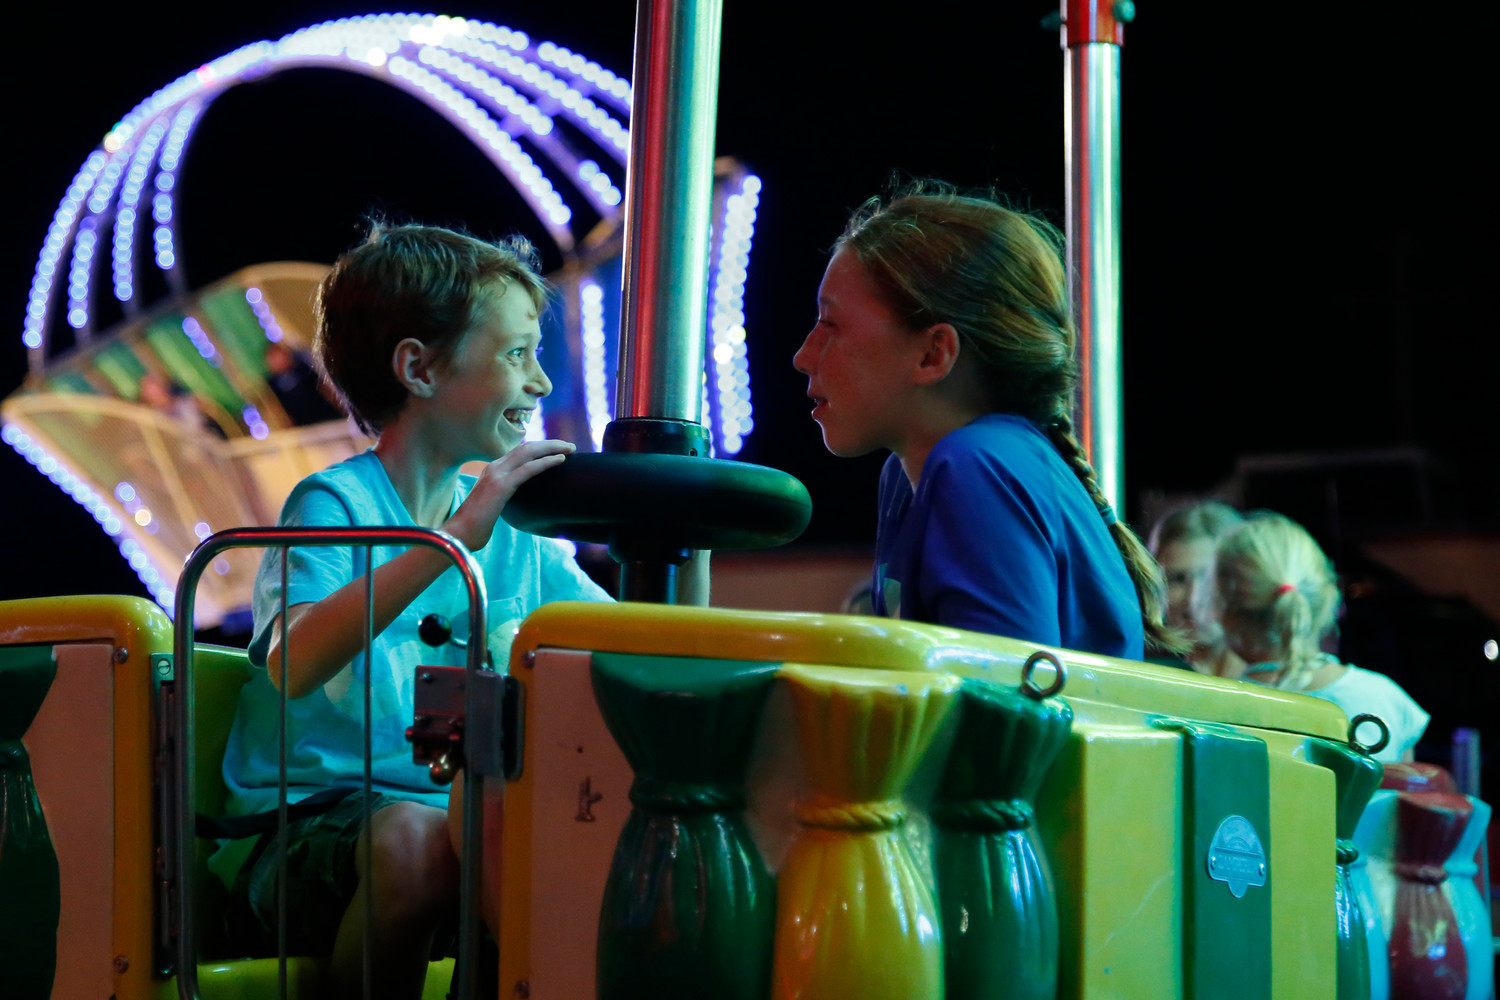 East Rockaway's annual Stars & Stripes Festival is set for Thursday through Saturday and offers plenty of activities. Last year, Liam and Avery enjoyed a spin on one of the many rides at the event.